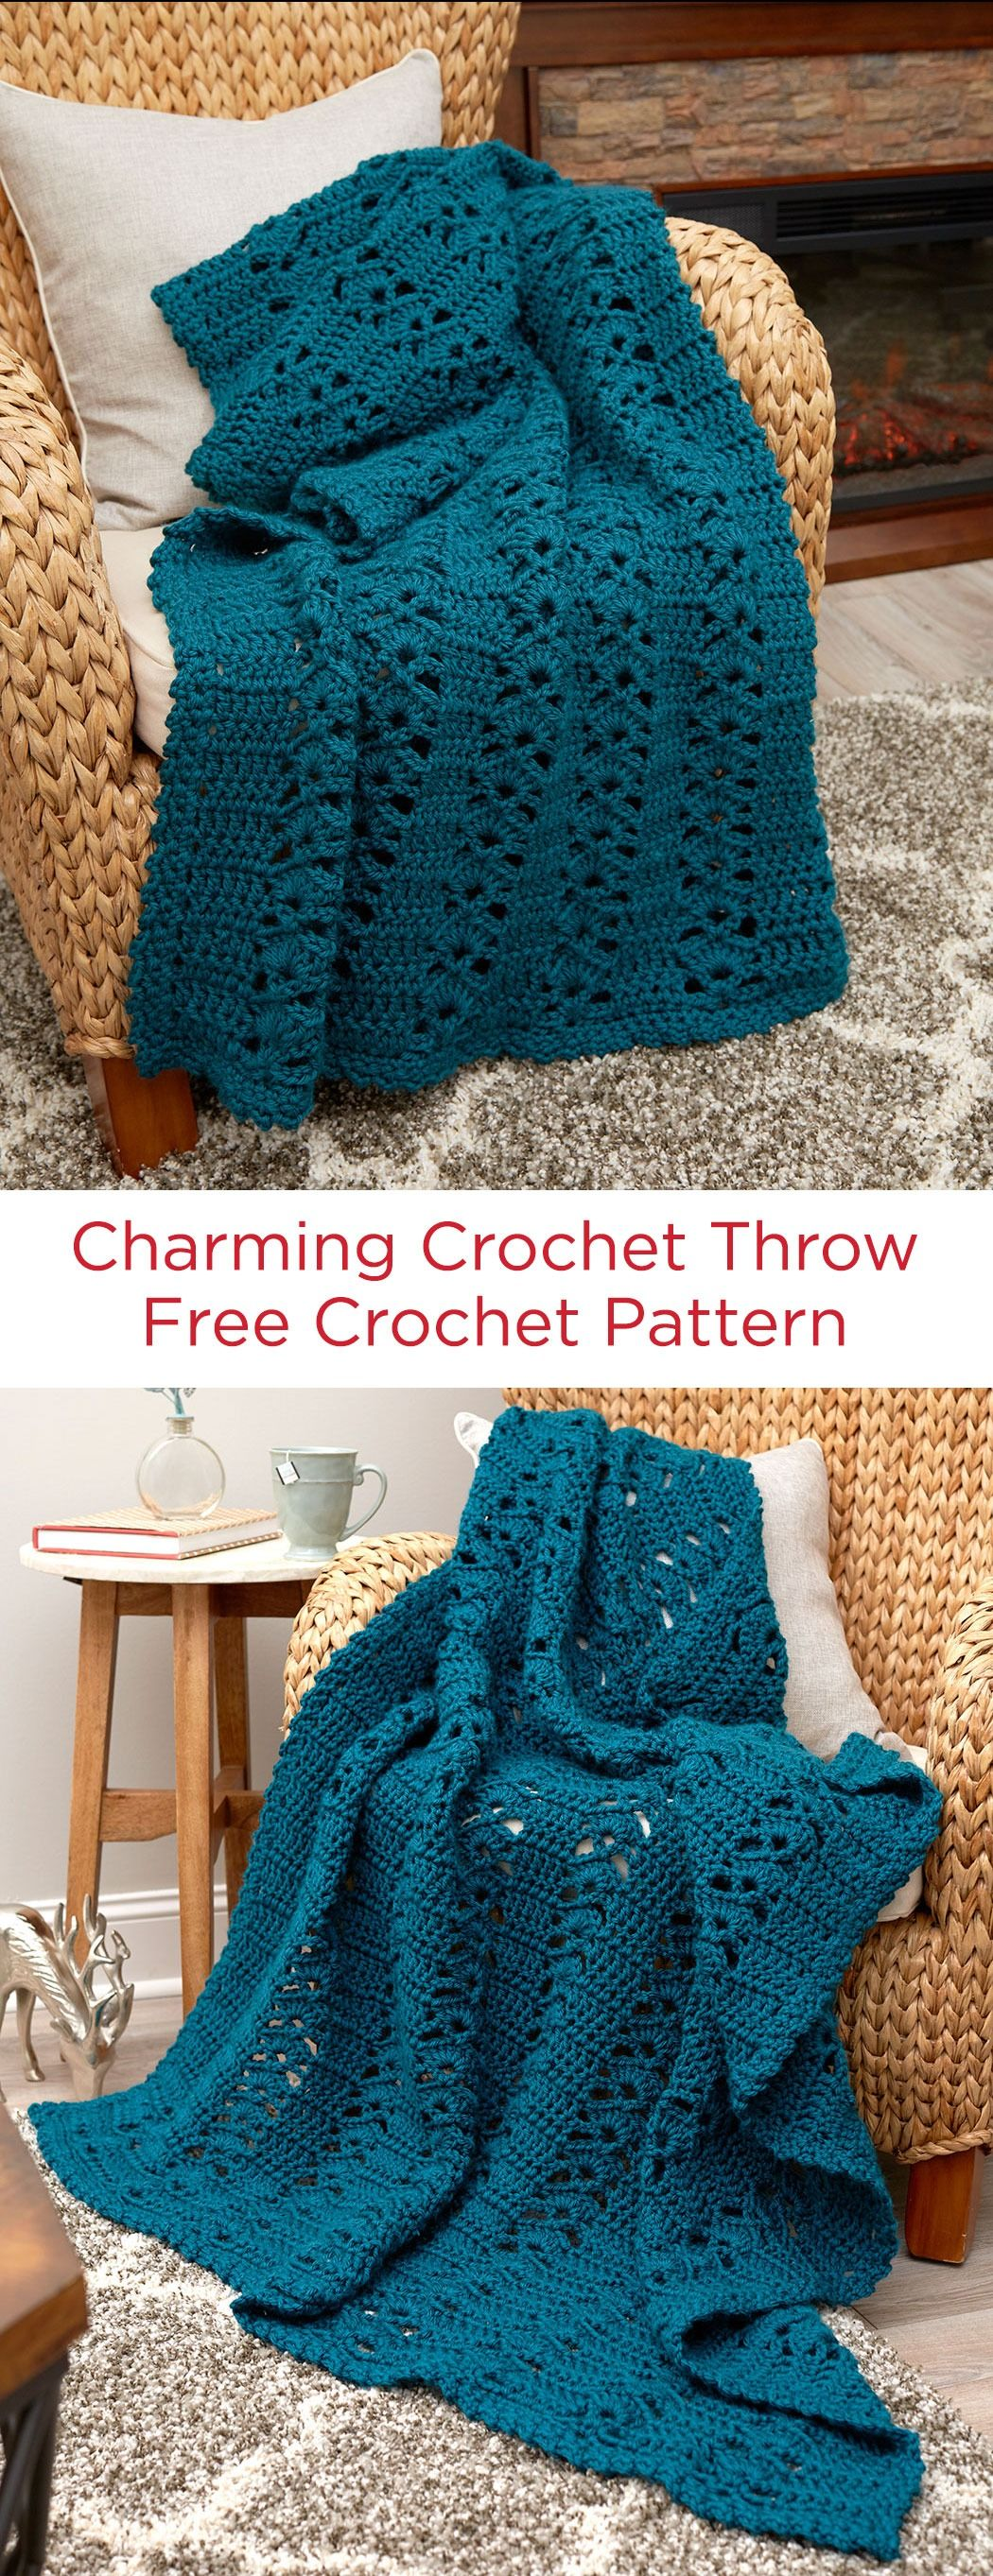 charming crochet throw free crochet pattern in red heart soft